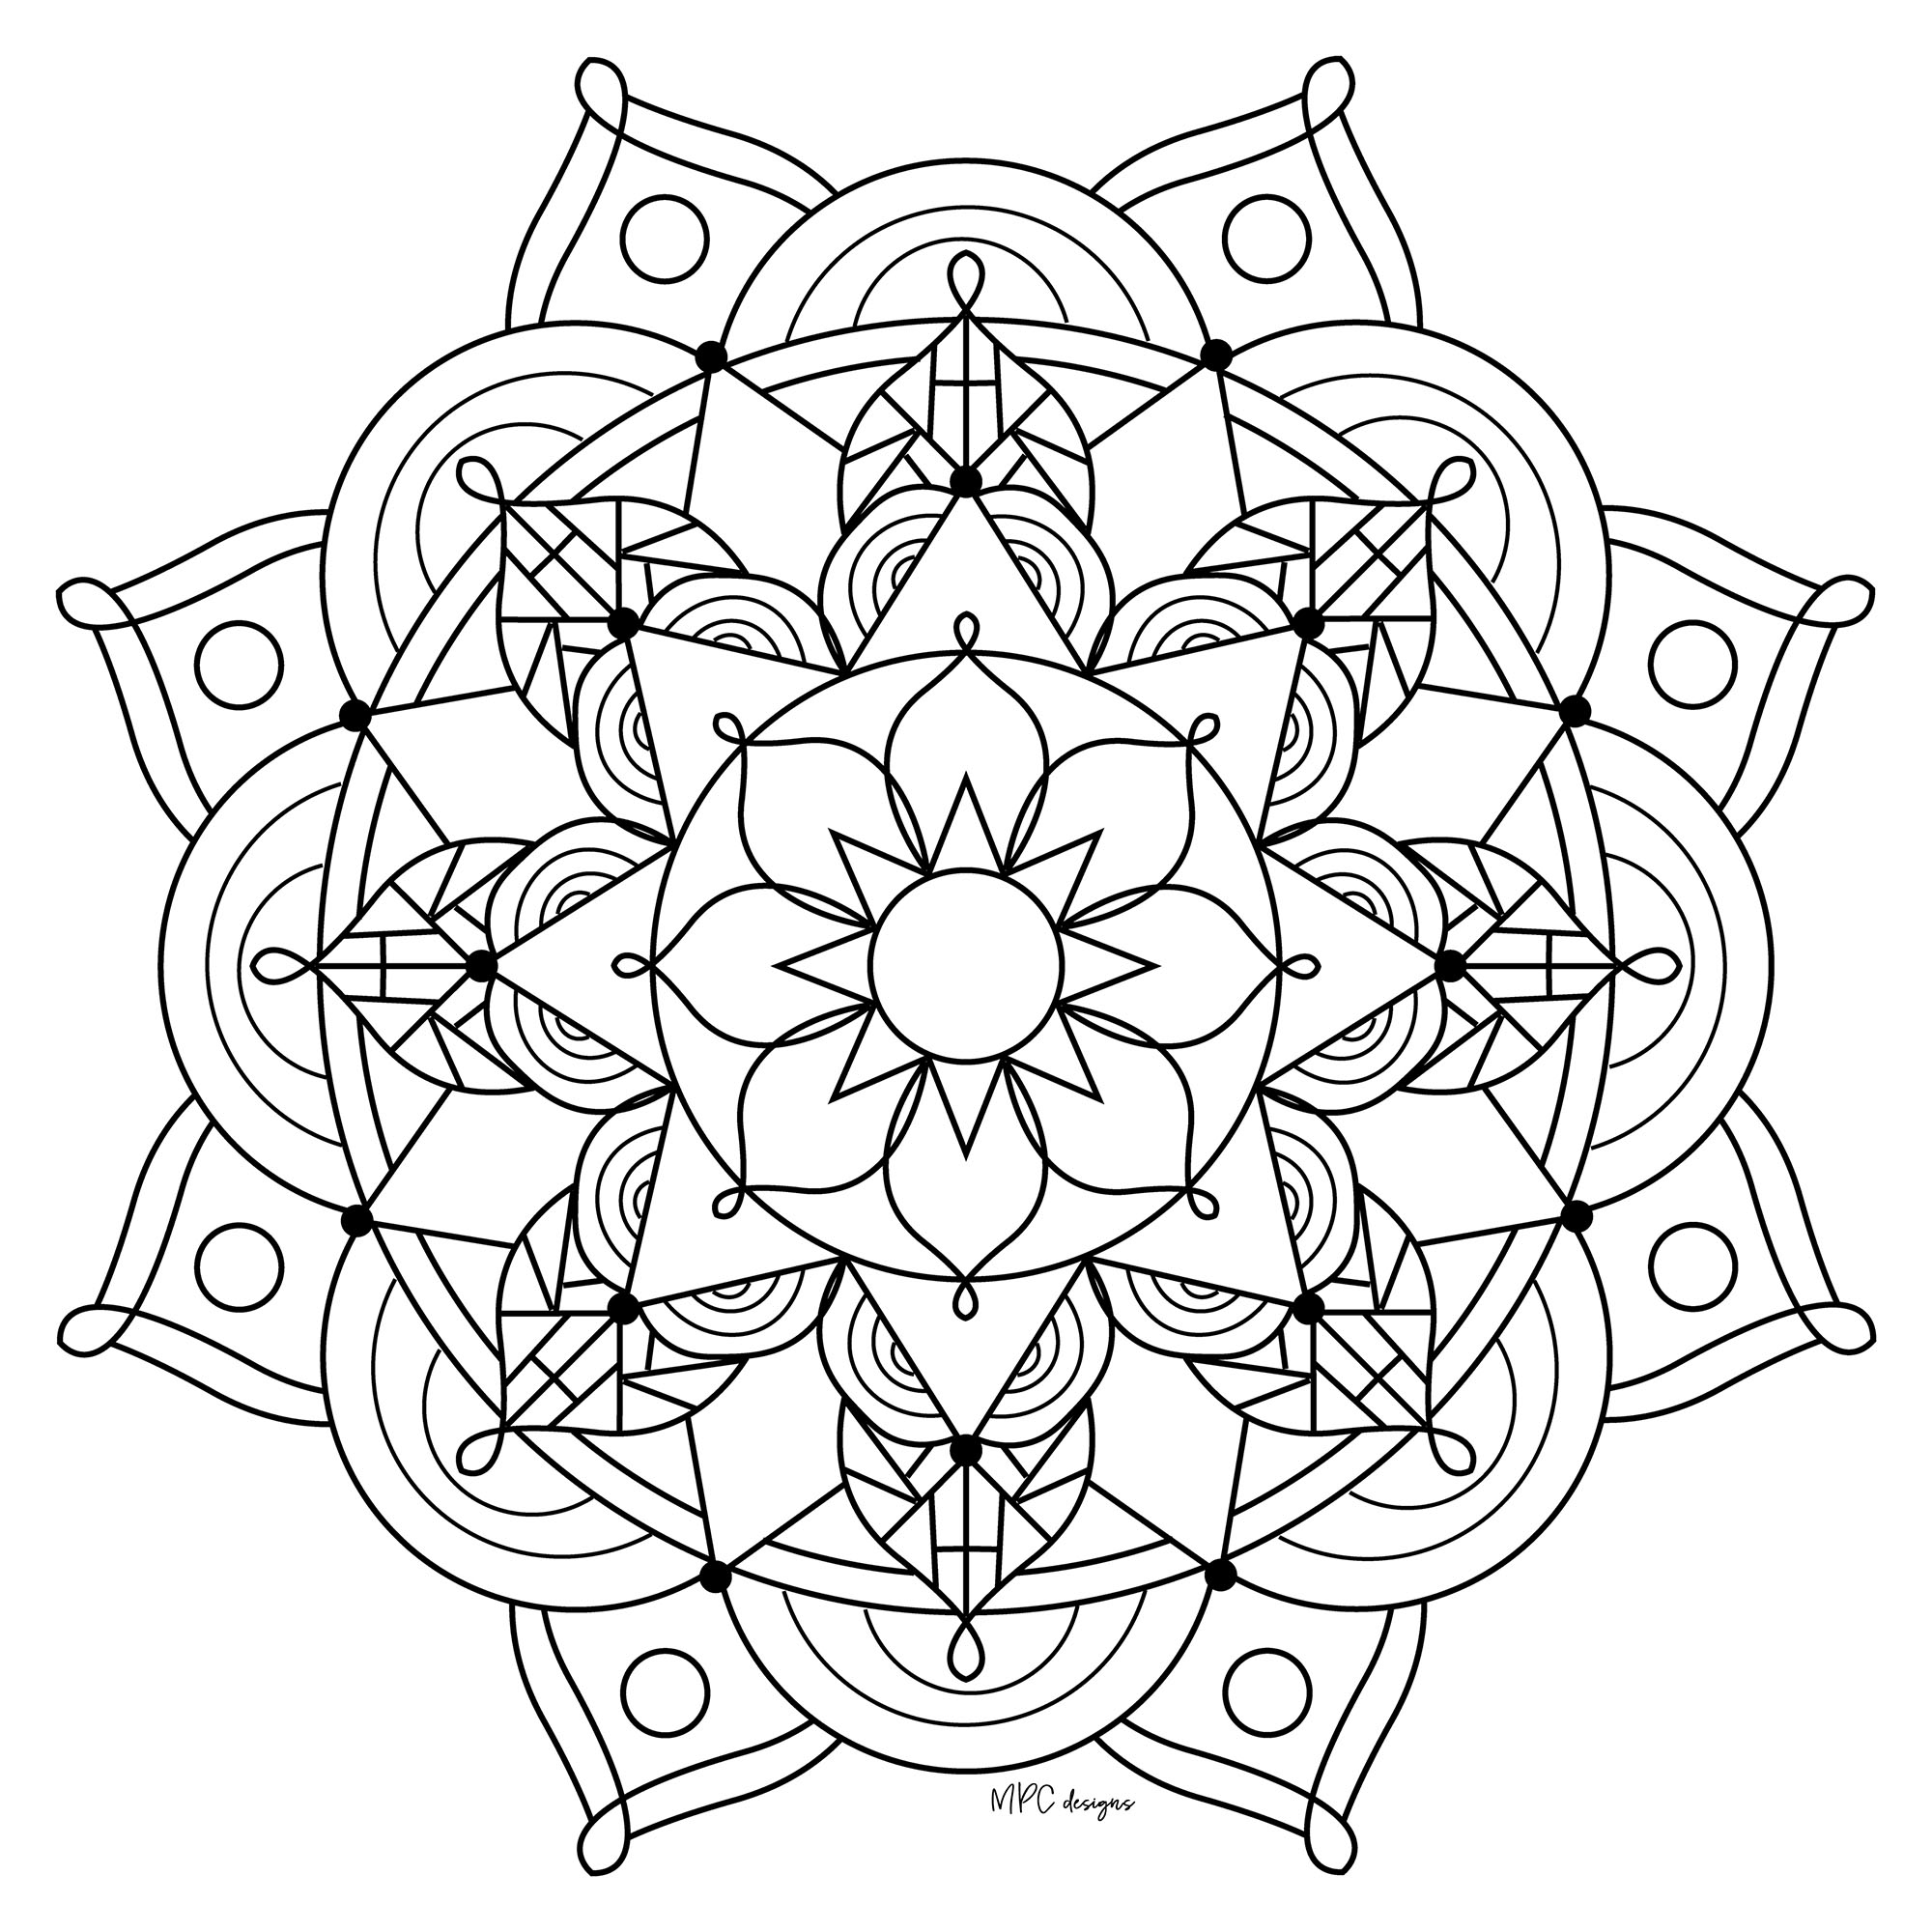 mandala coloring pages for adults download the full size mandala on the right to print and for mandala coloring adults pages